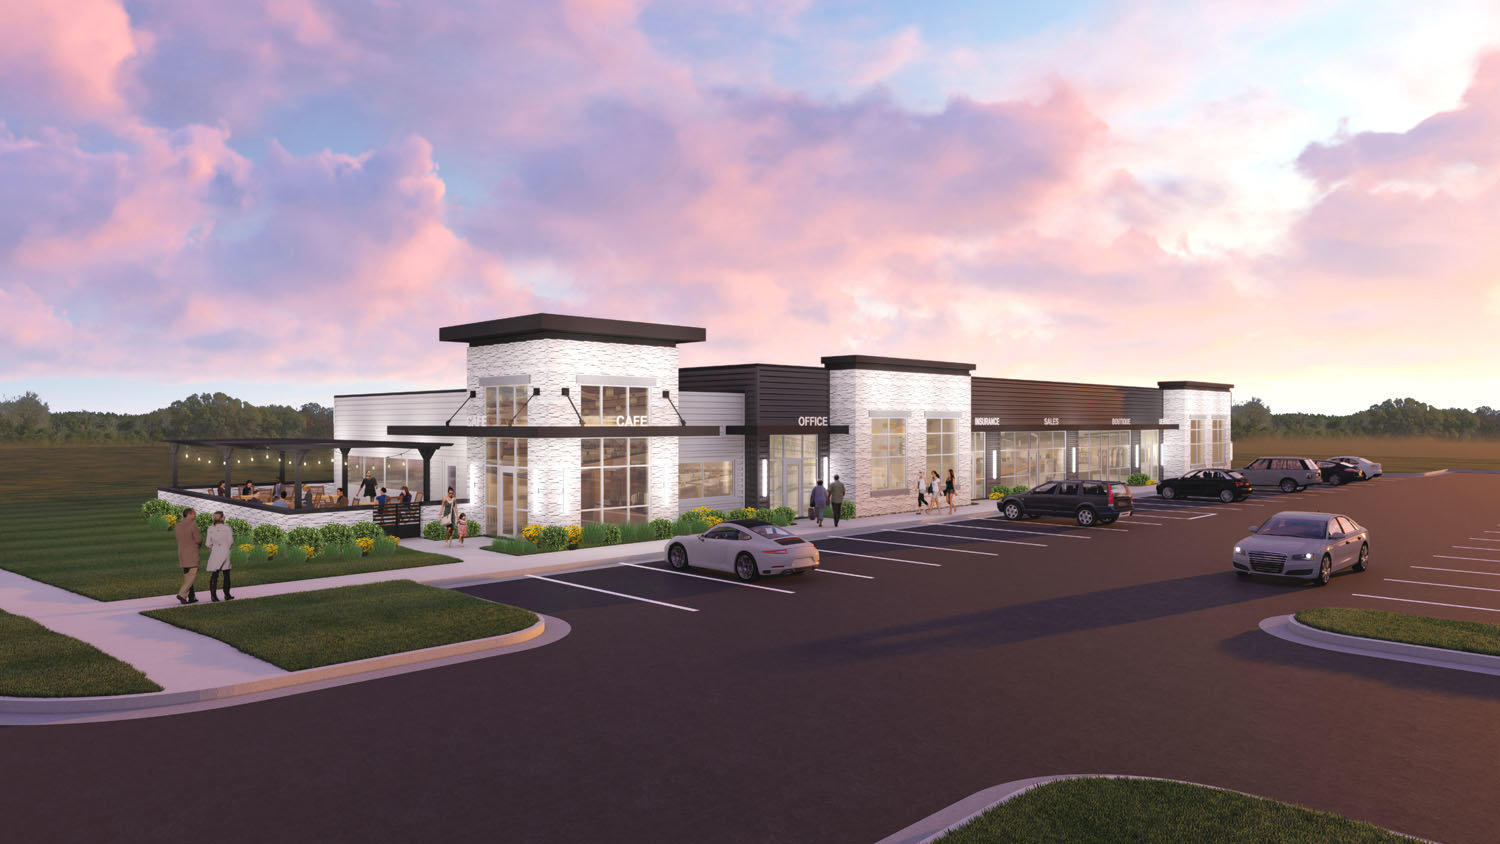 Plans are in the works to create a mixed-use business center with a focus on ancillary real estate services next to the future Keller Williams local headquarters.